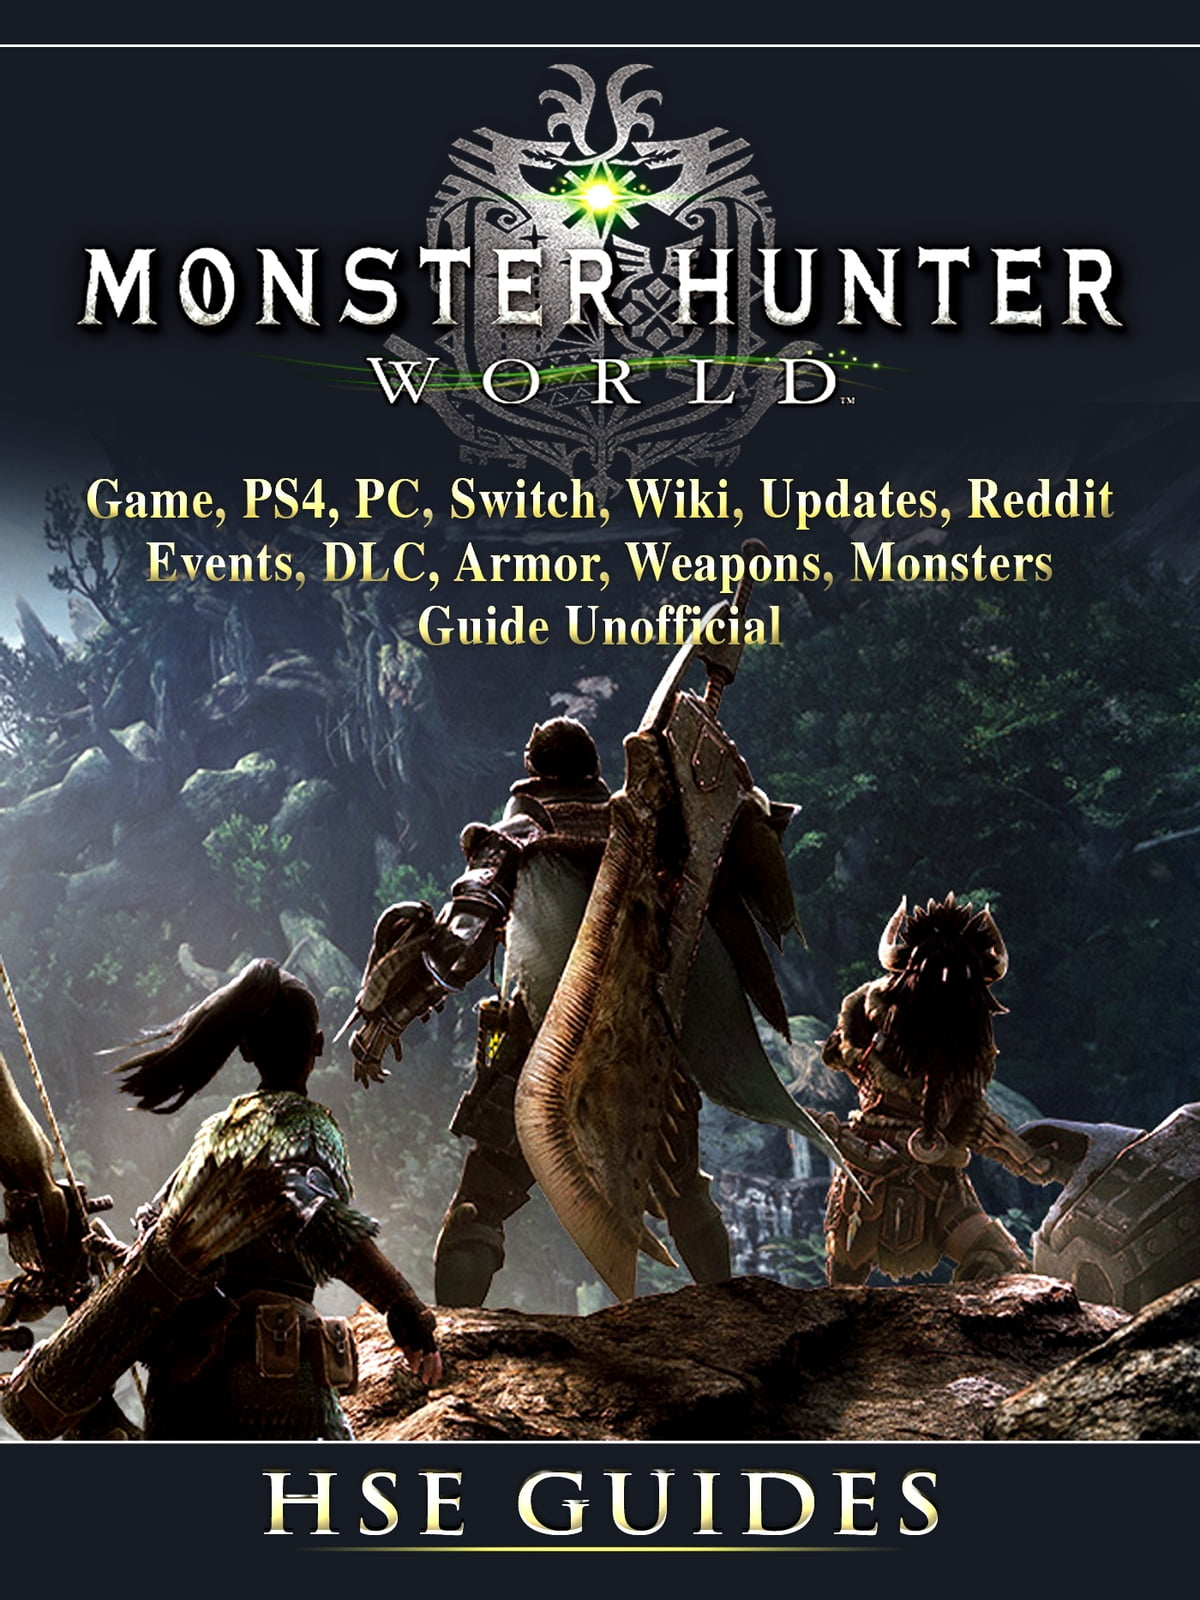 Monster Hunter World Game, PS4, PC, Switch, Wiki, Updates, Reddit, Events,  DLC, Armor, Weapons, Monsters, Guide Unofficial ebook by Hse Games -